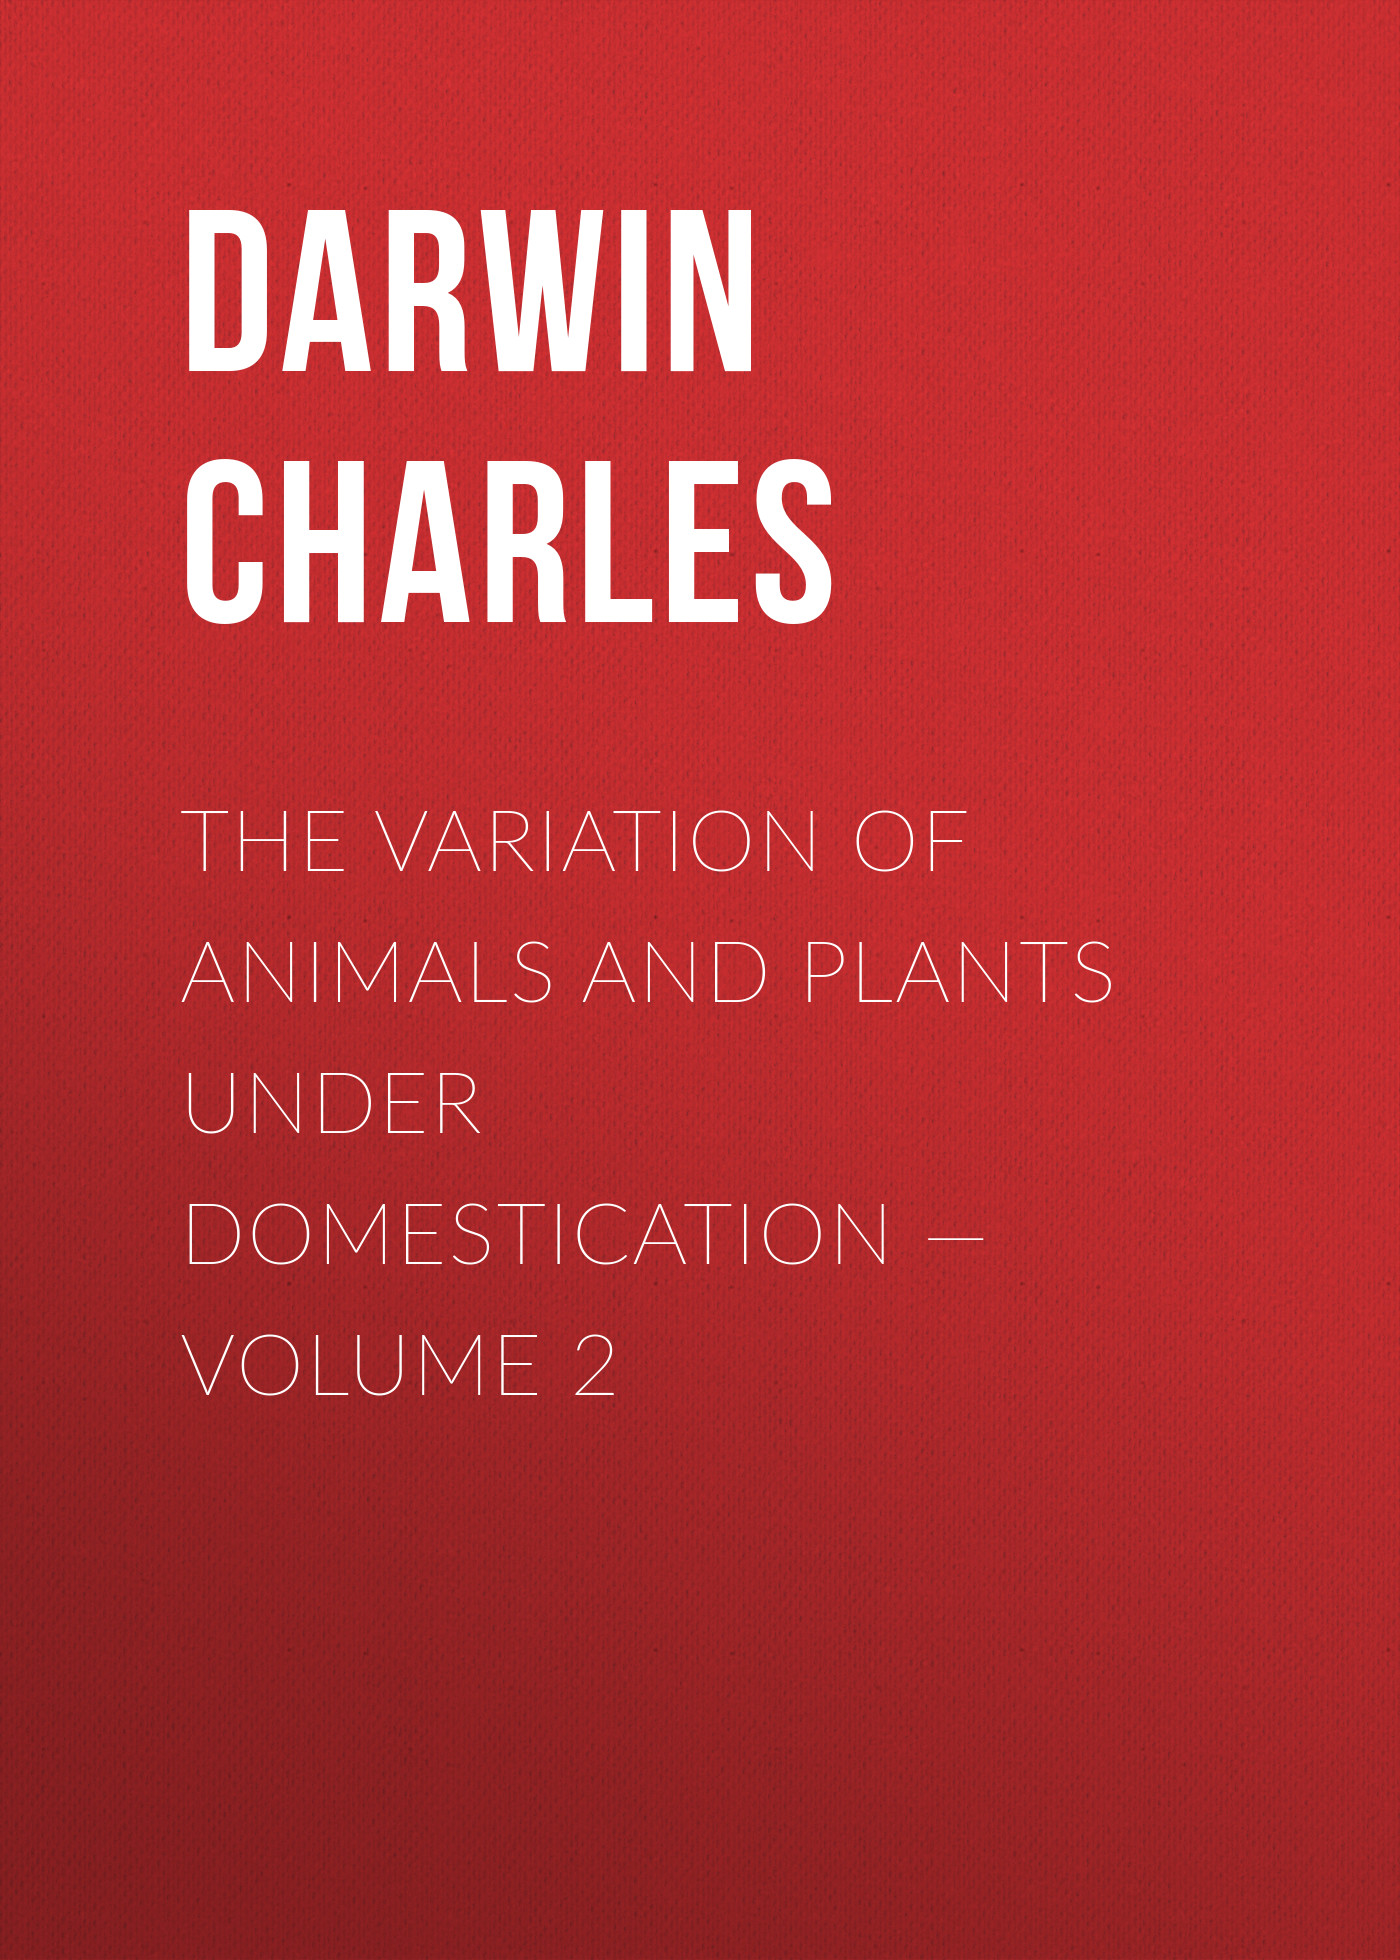 The Variation of Animals and Plants under Domestication— Volume 2